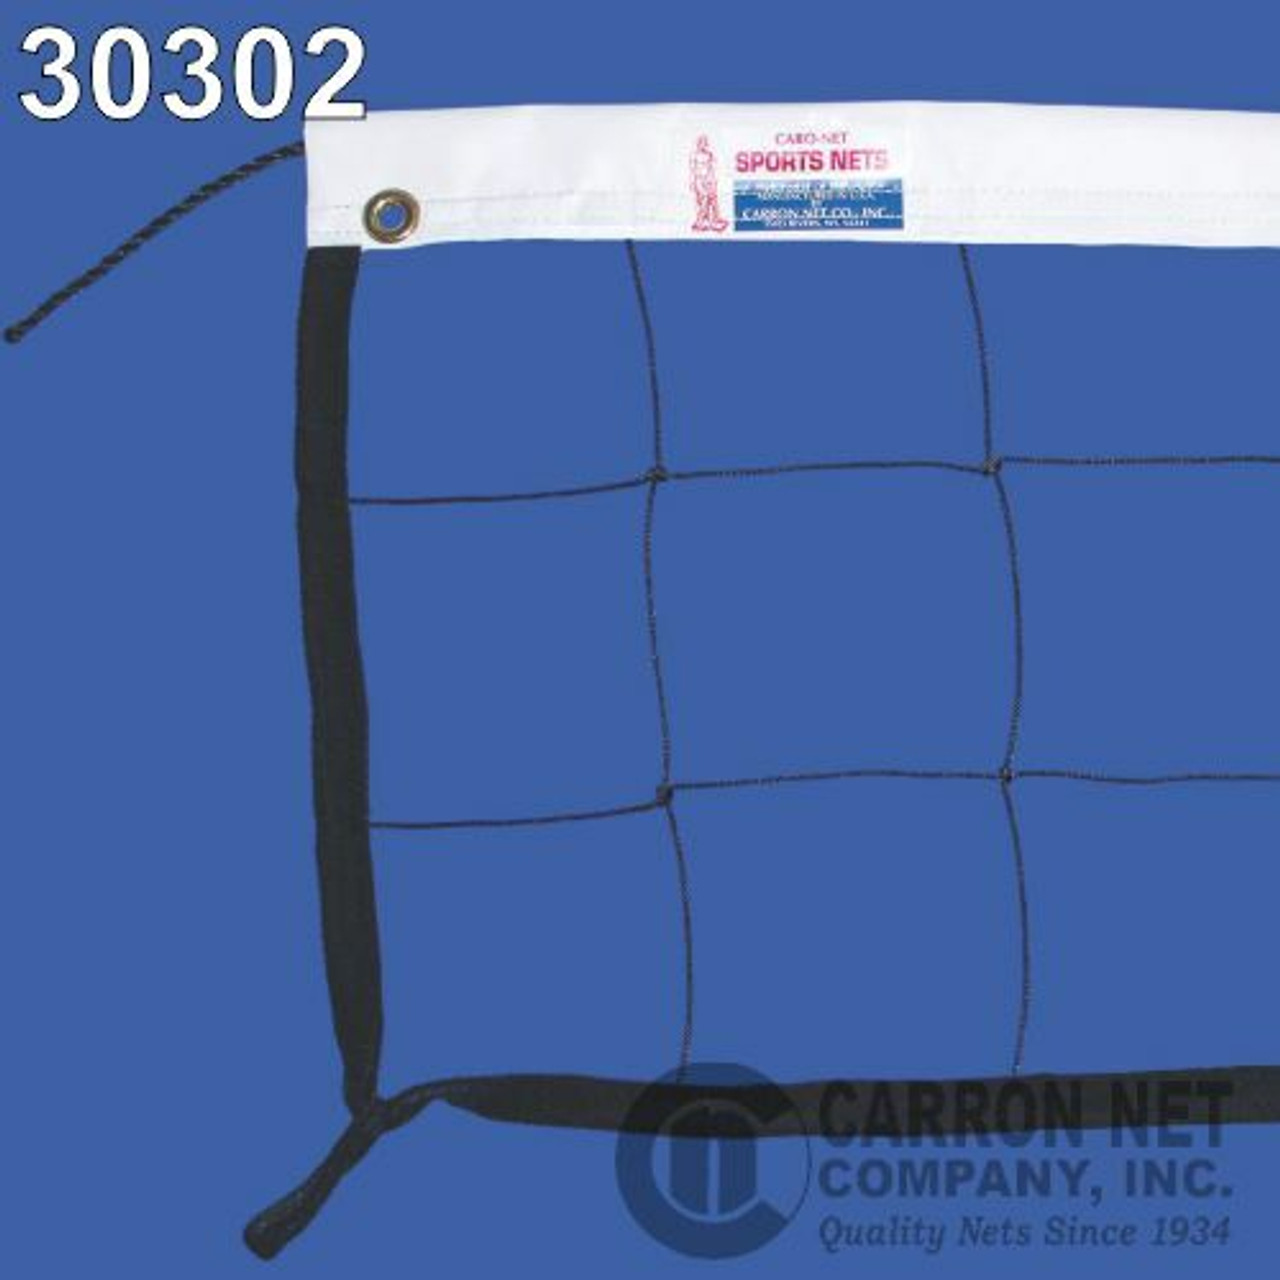 Hercules Competition Volleyball Net with Rope Top